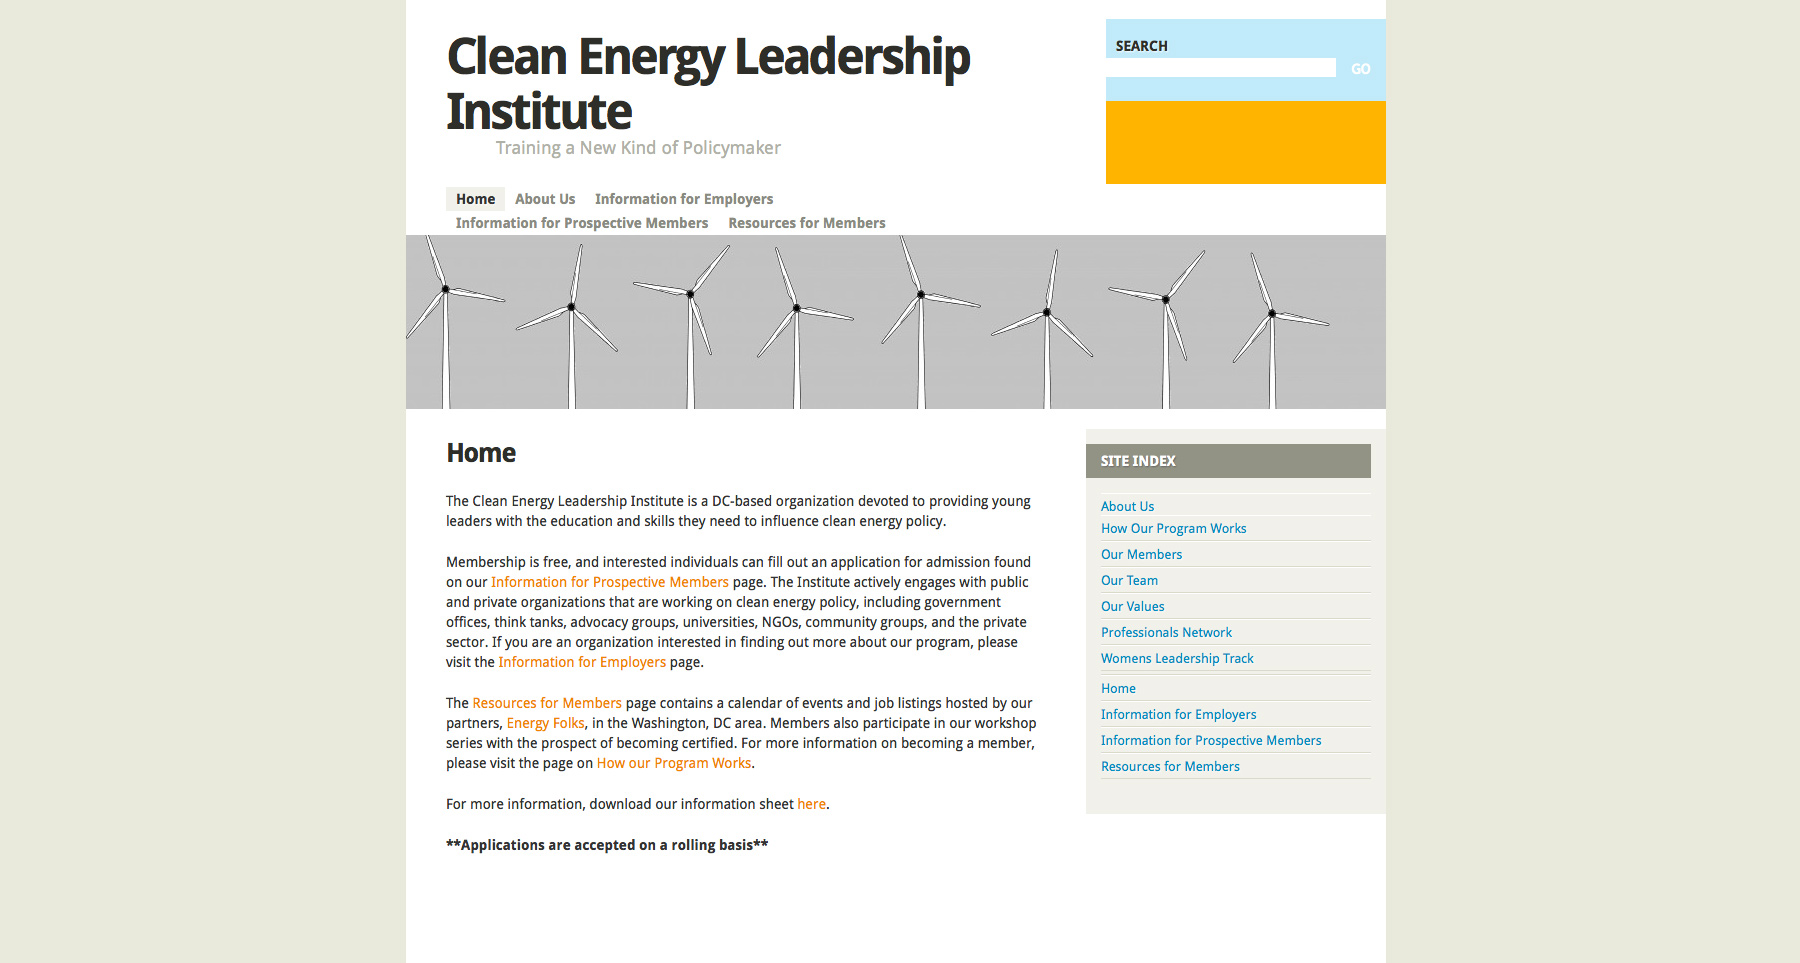 Clean Energy Leadership Institute website design before